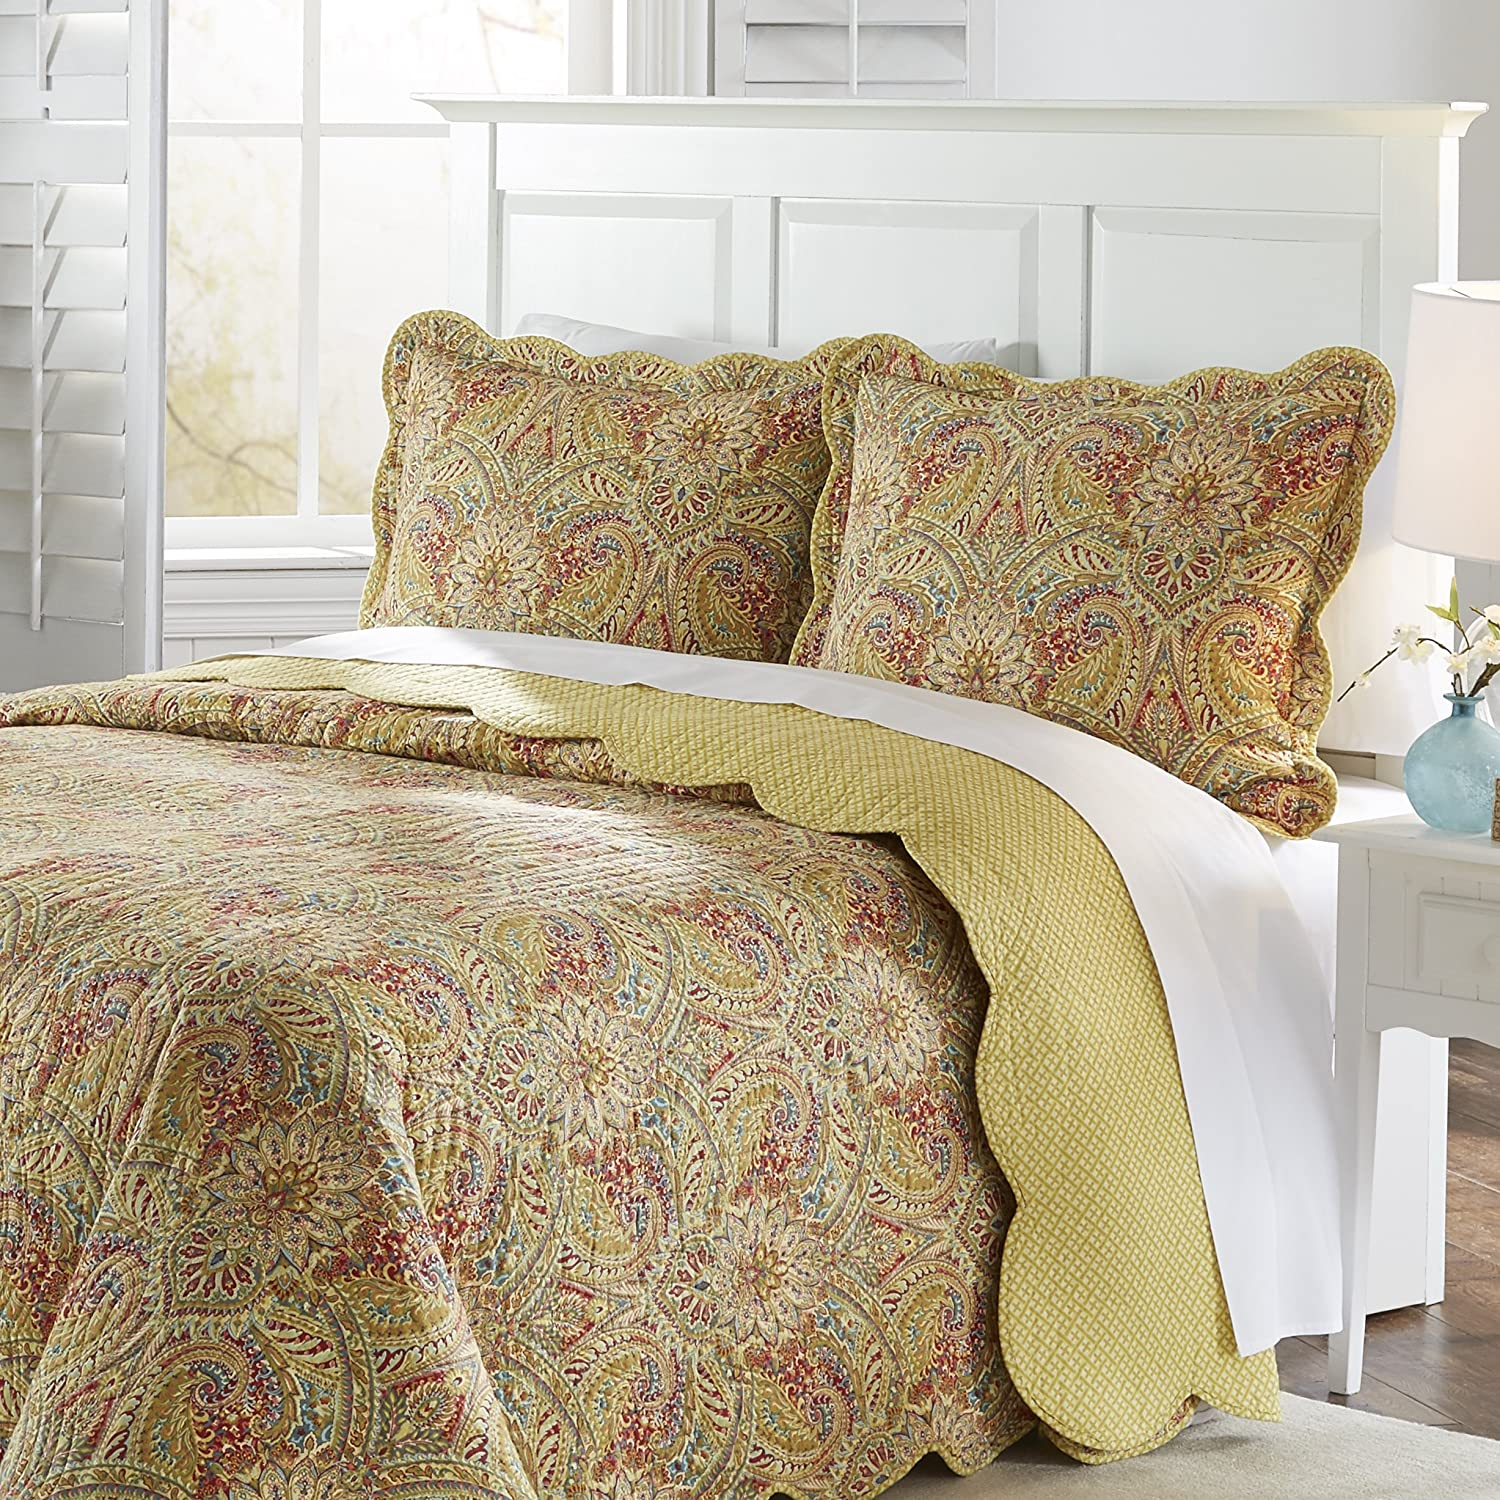 WAVERLY Swept Away Bedspread Collection 110x120 Berry Ellery Homestyles 15969BEDDKNGBER